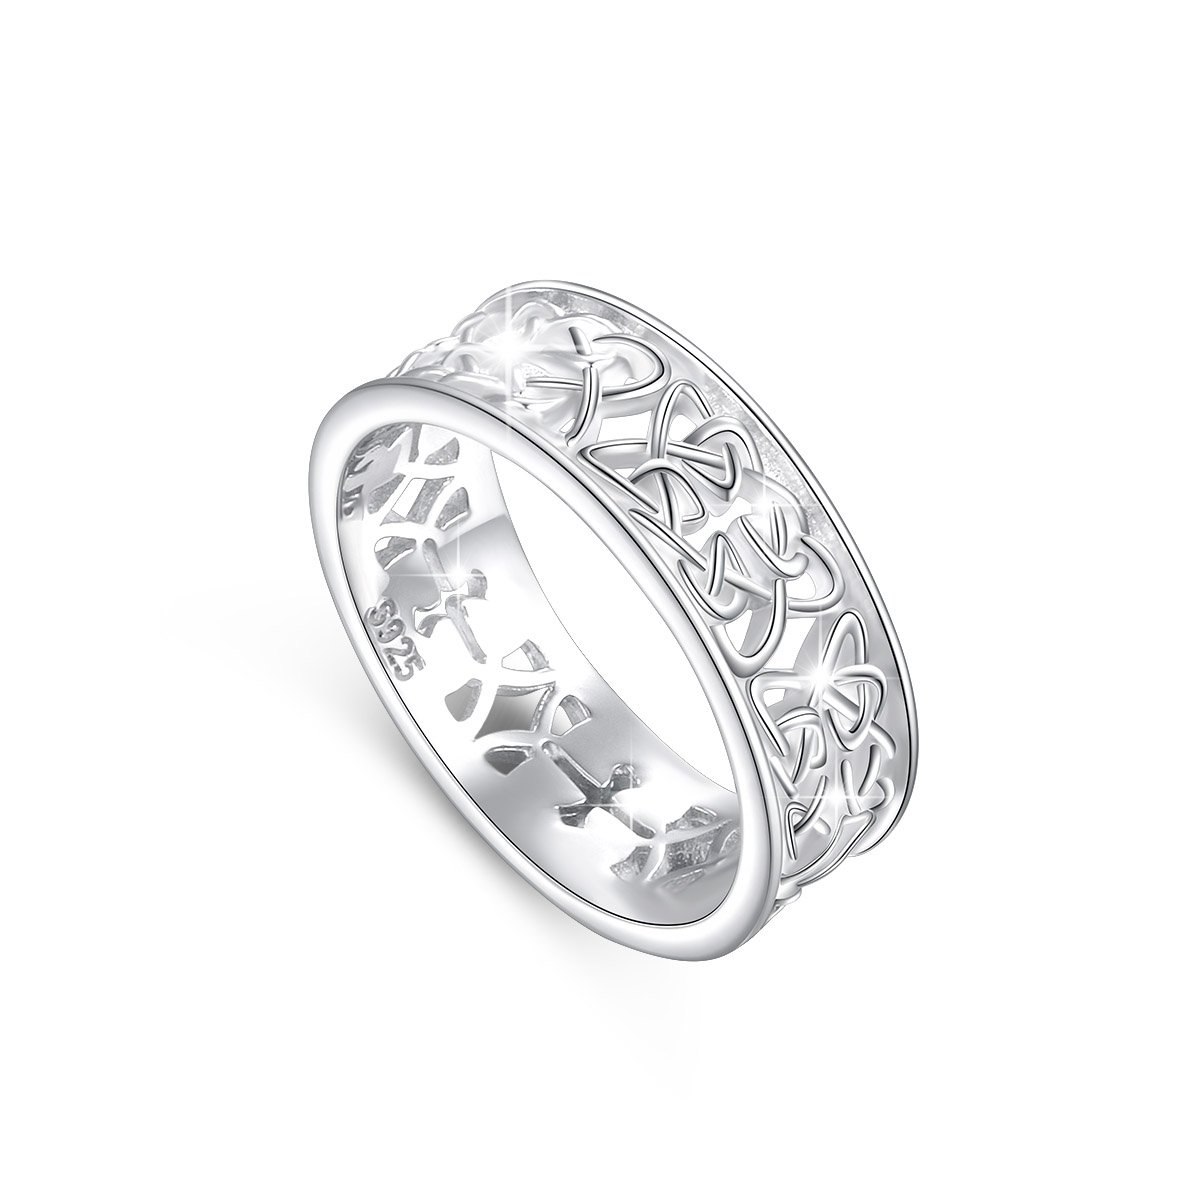 DAOCHONG Nickel-free 925 Sterling Silver Irish Love Trinity Woven Celtic Knot Band Ring for Women, Size 6 7 8 (7)